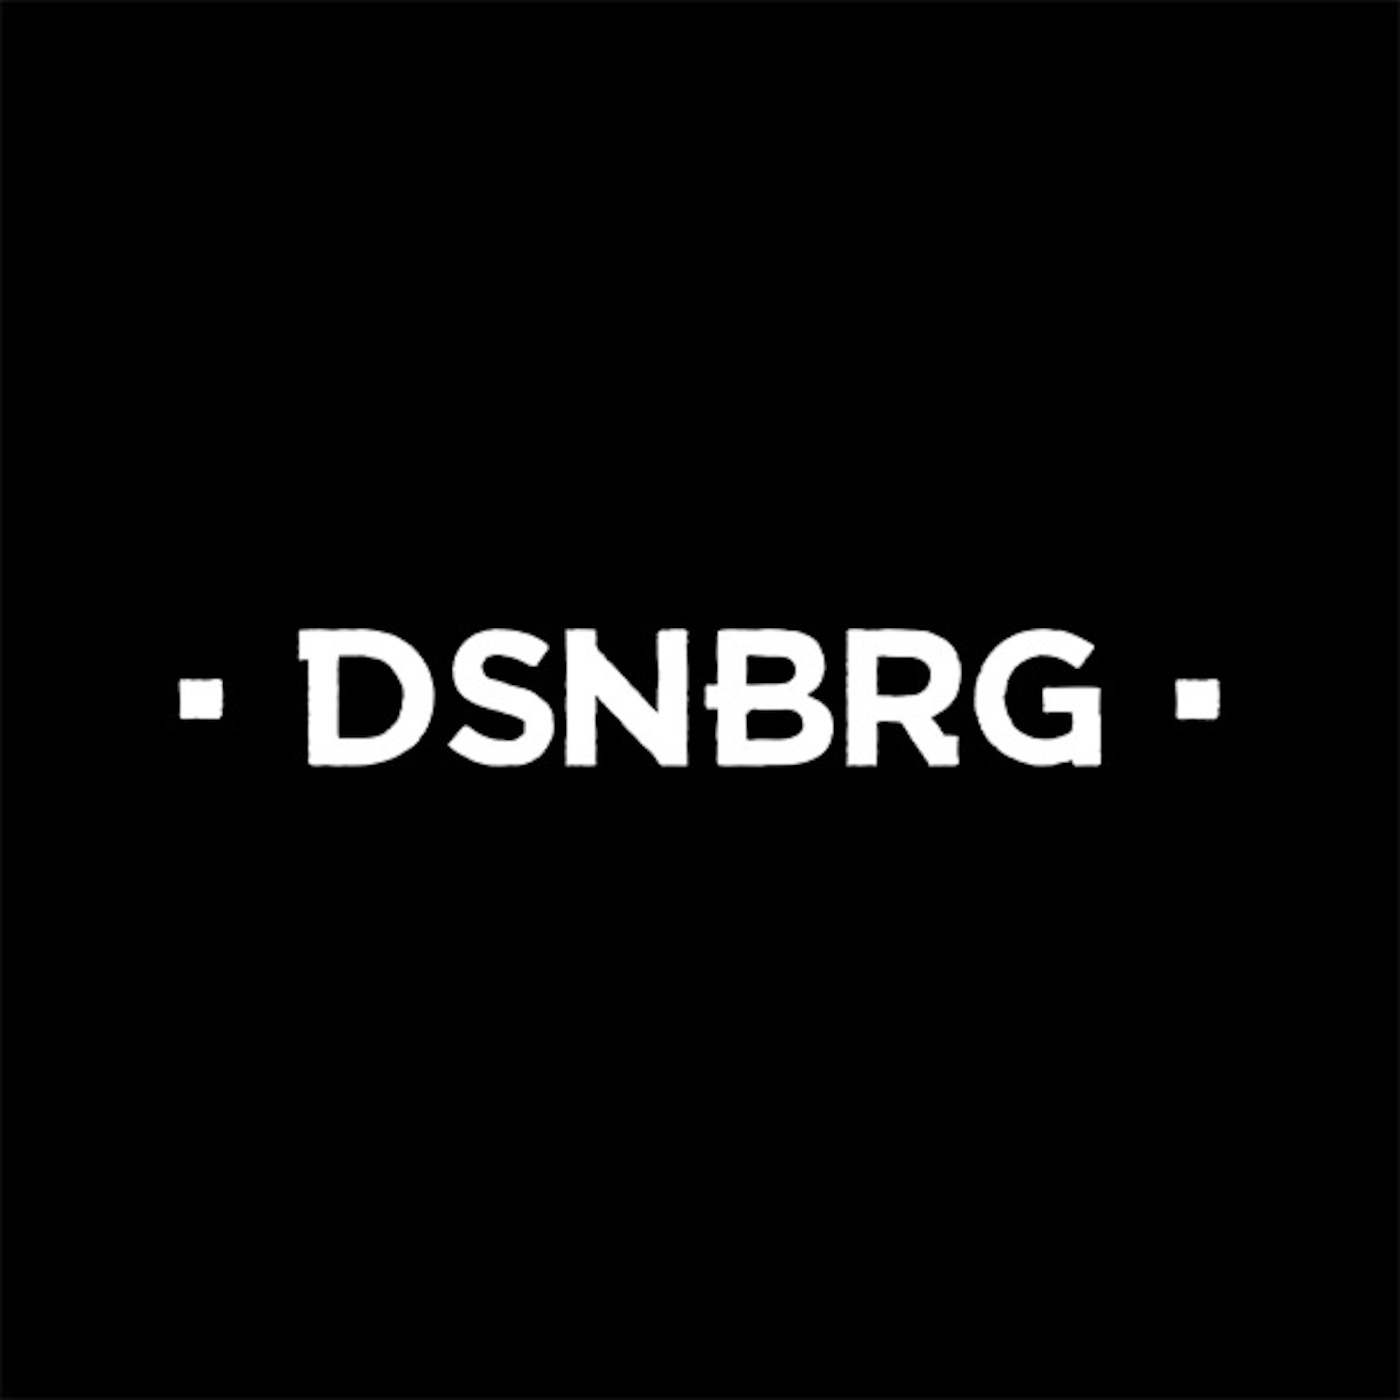 DSNBRG Podcast